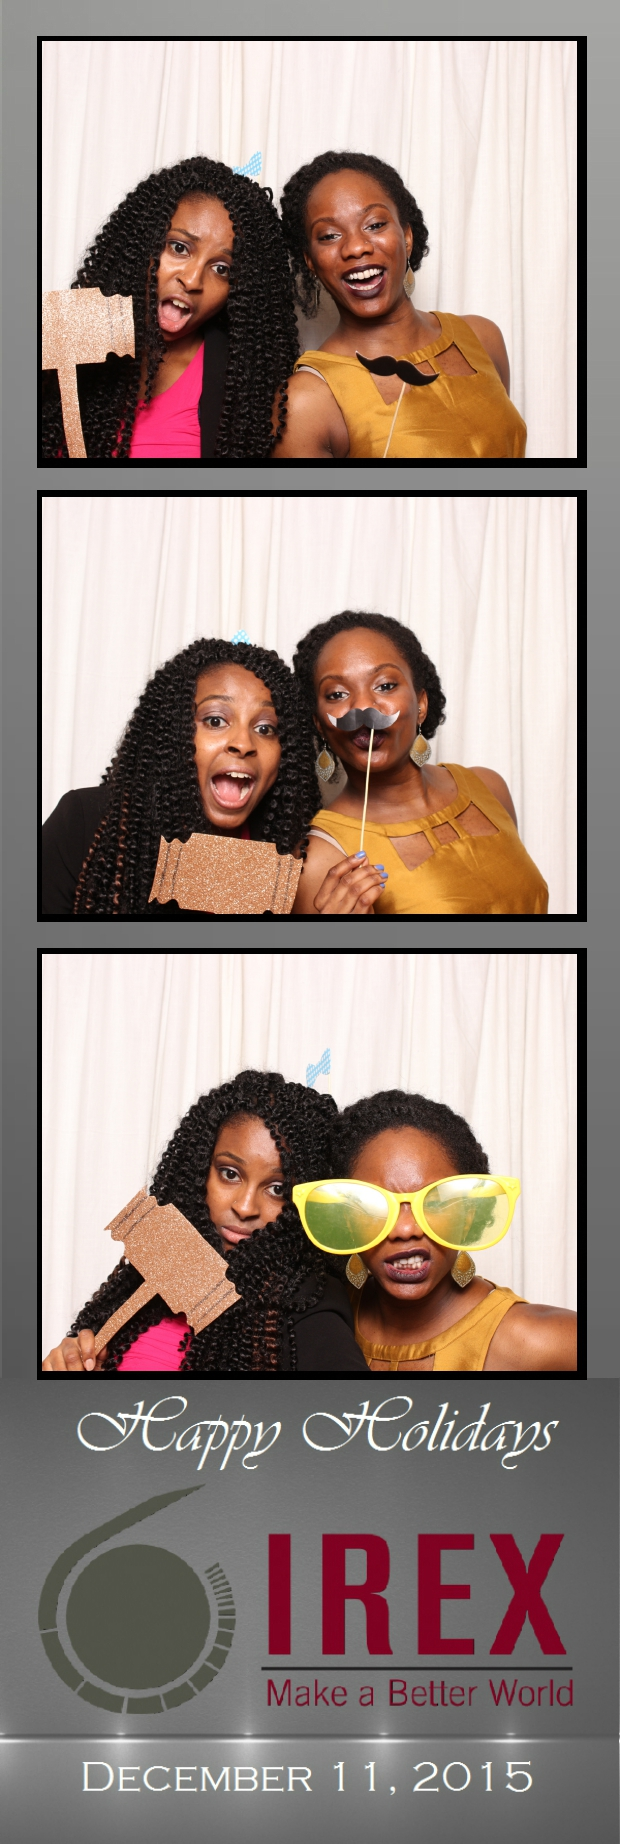 Guest House Events Photo Booth Strips IREX (96).jpg